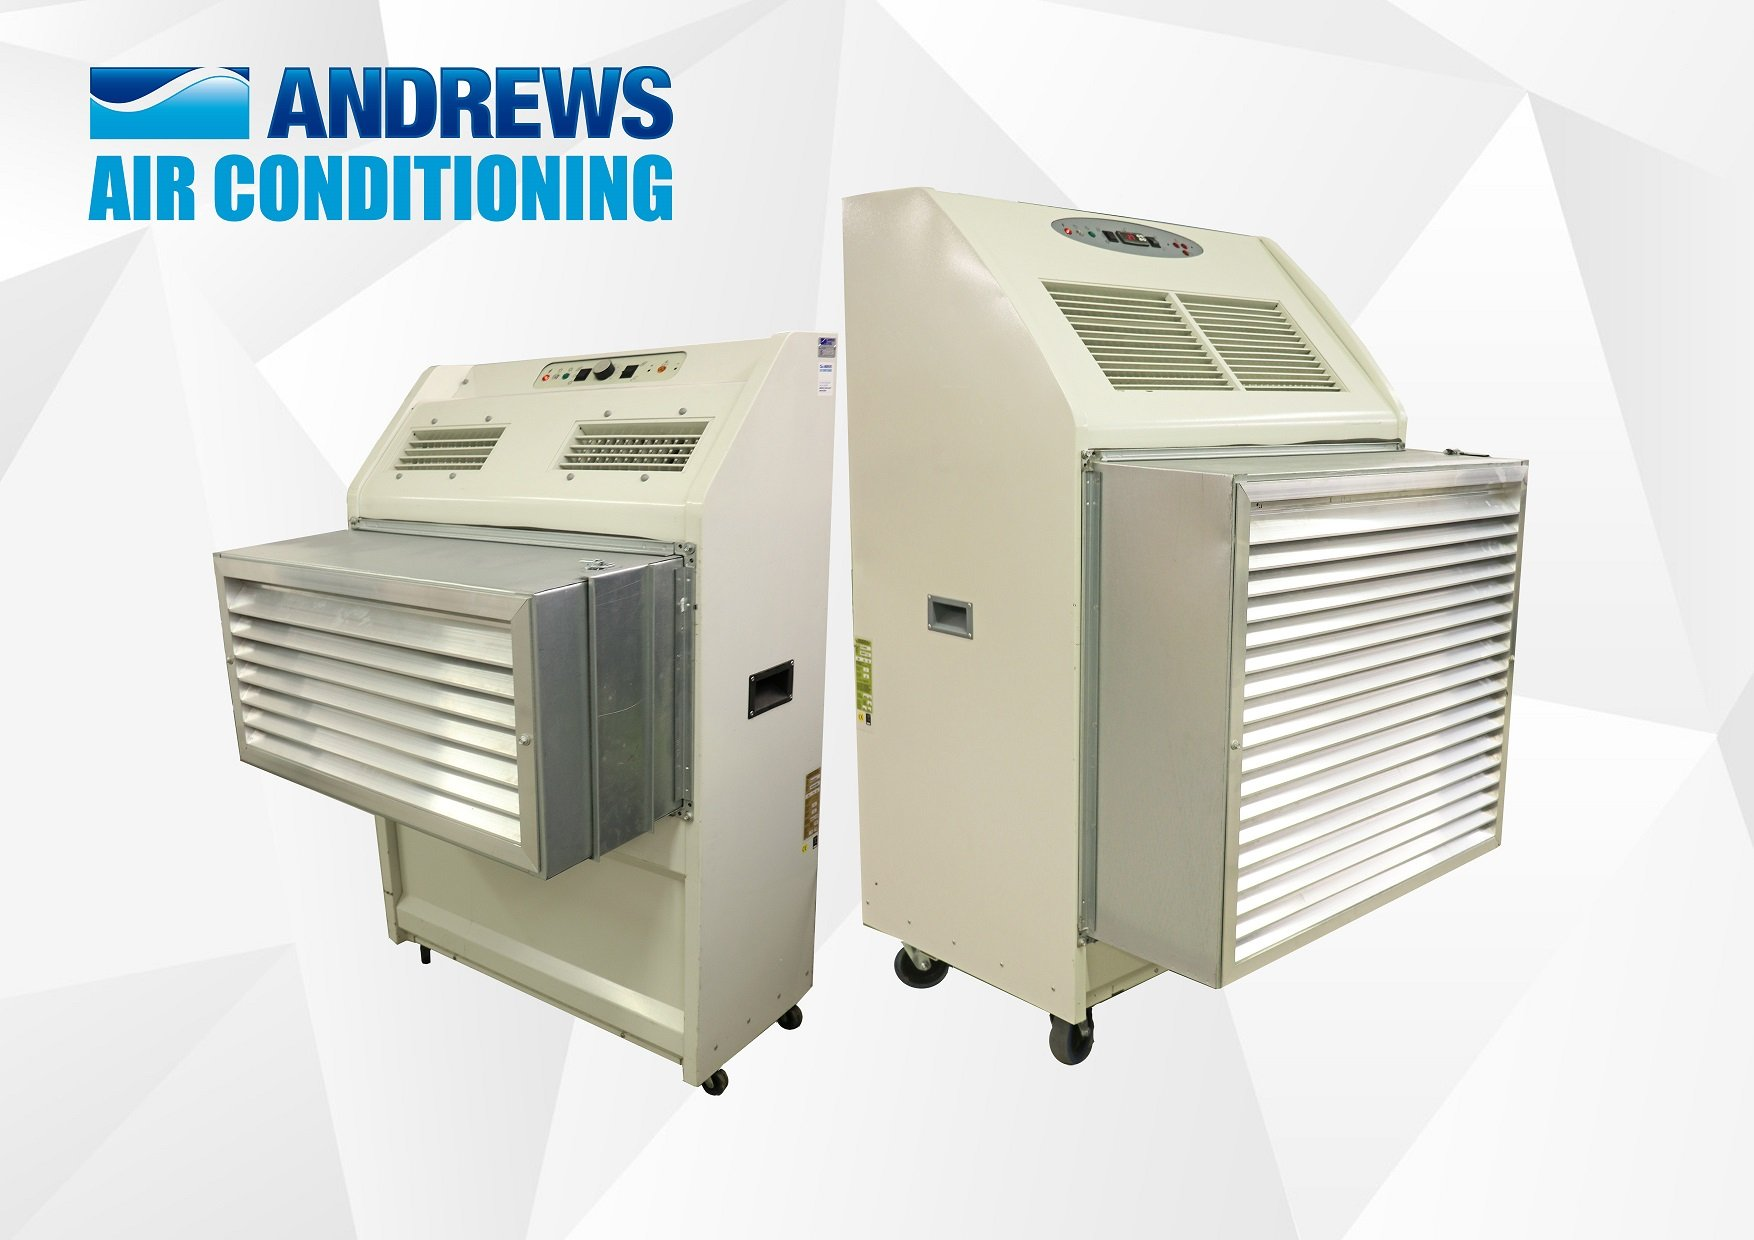 Air conditioners with advanced HEPA filtration available for hire